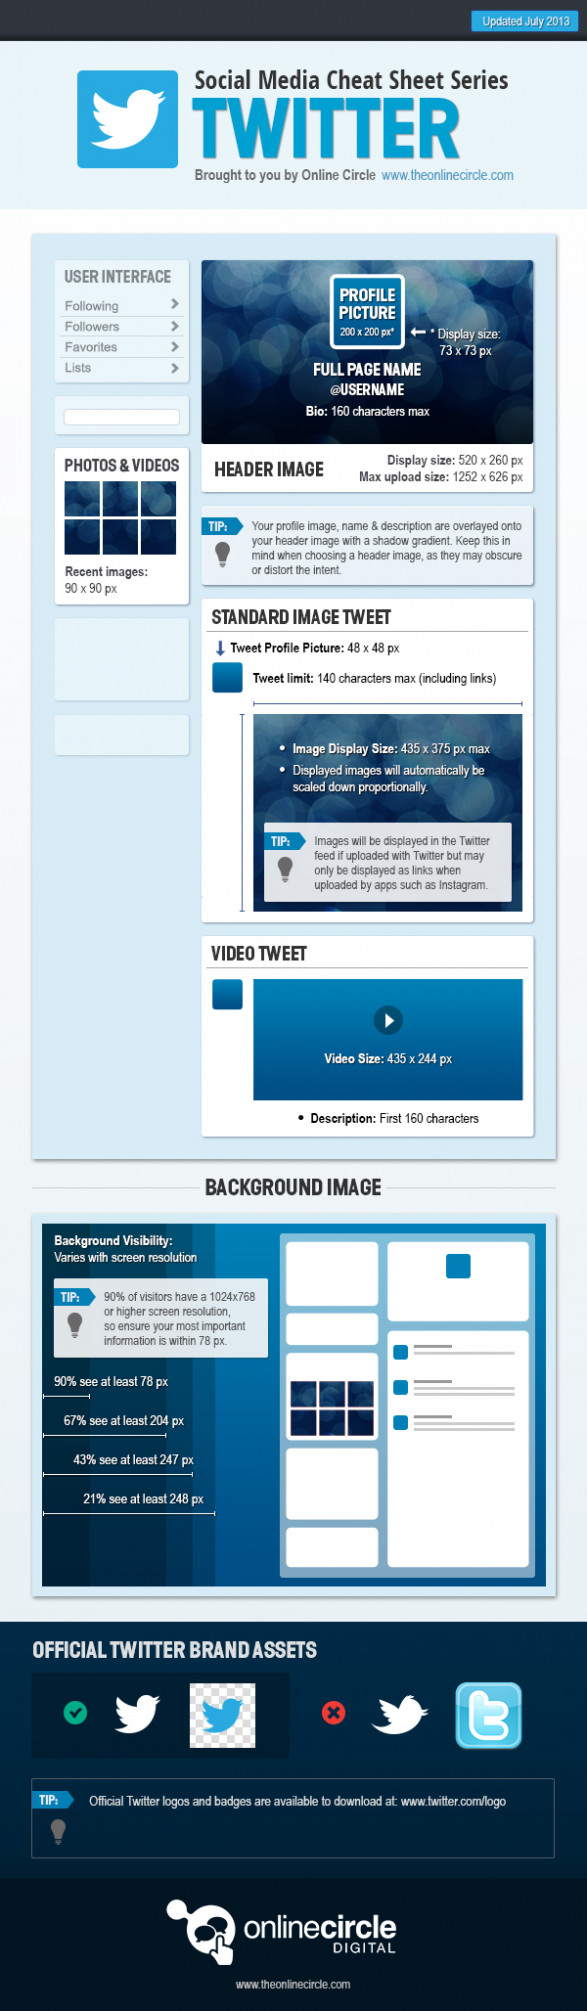 Online Circle Digital | Twitter Sizes and Dimensions Cheat Sheet 2013